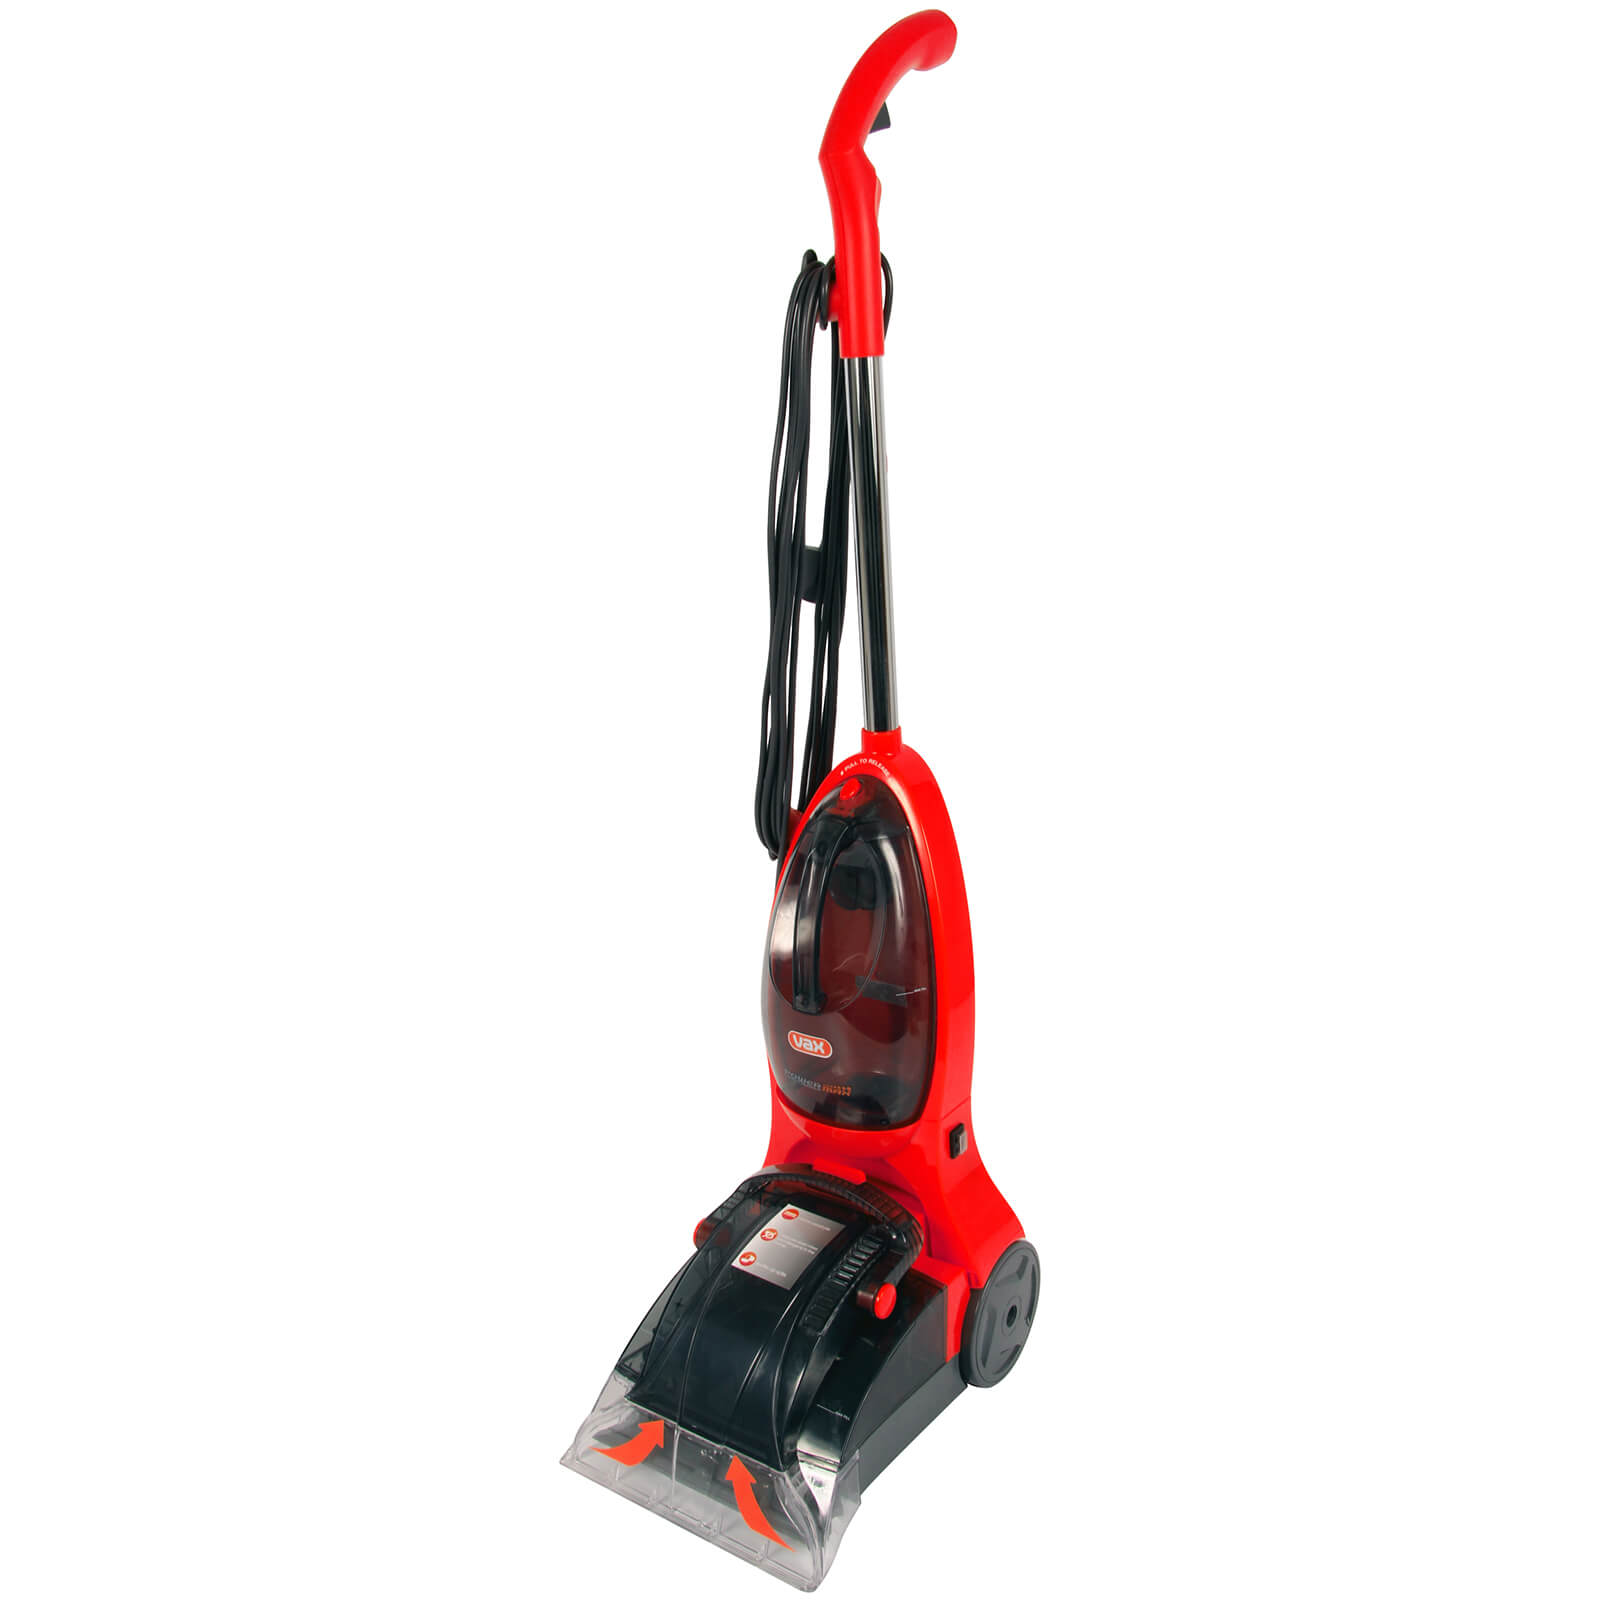 VAX VRS18W 500W Rapide Spring Carpet Washer